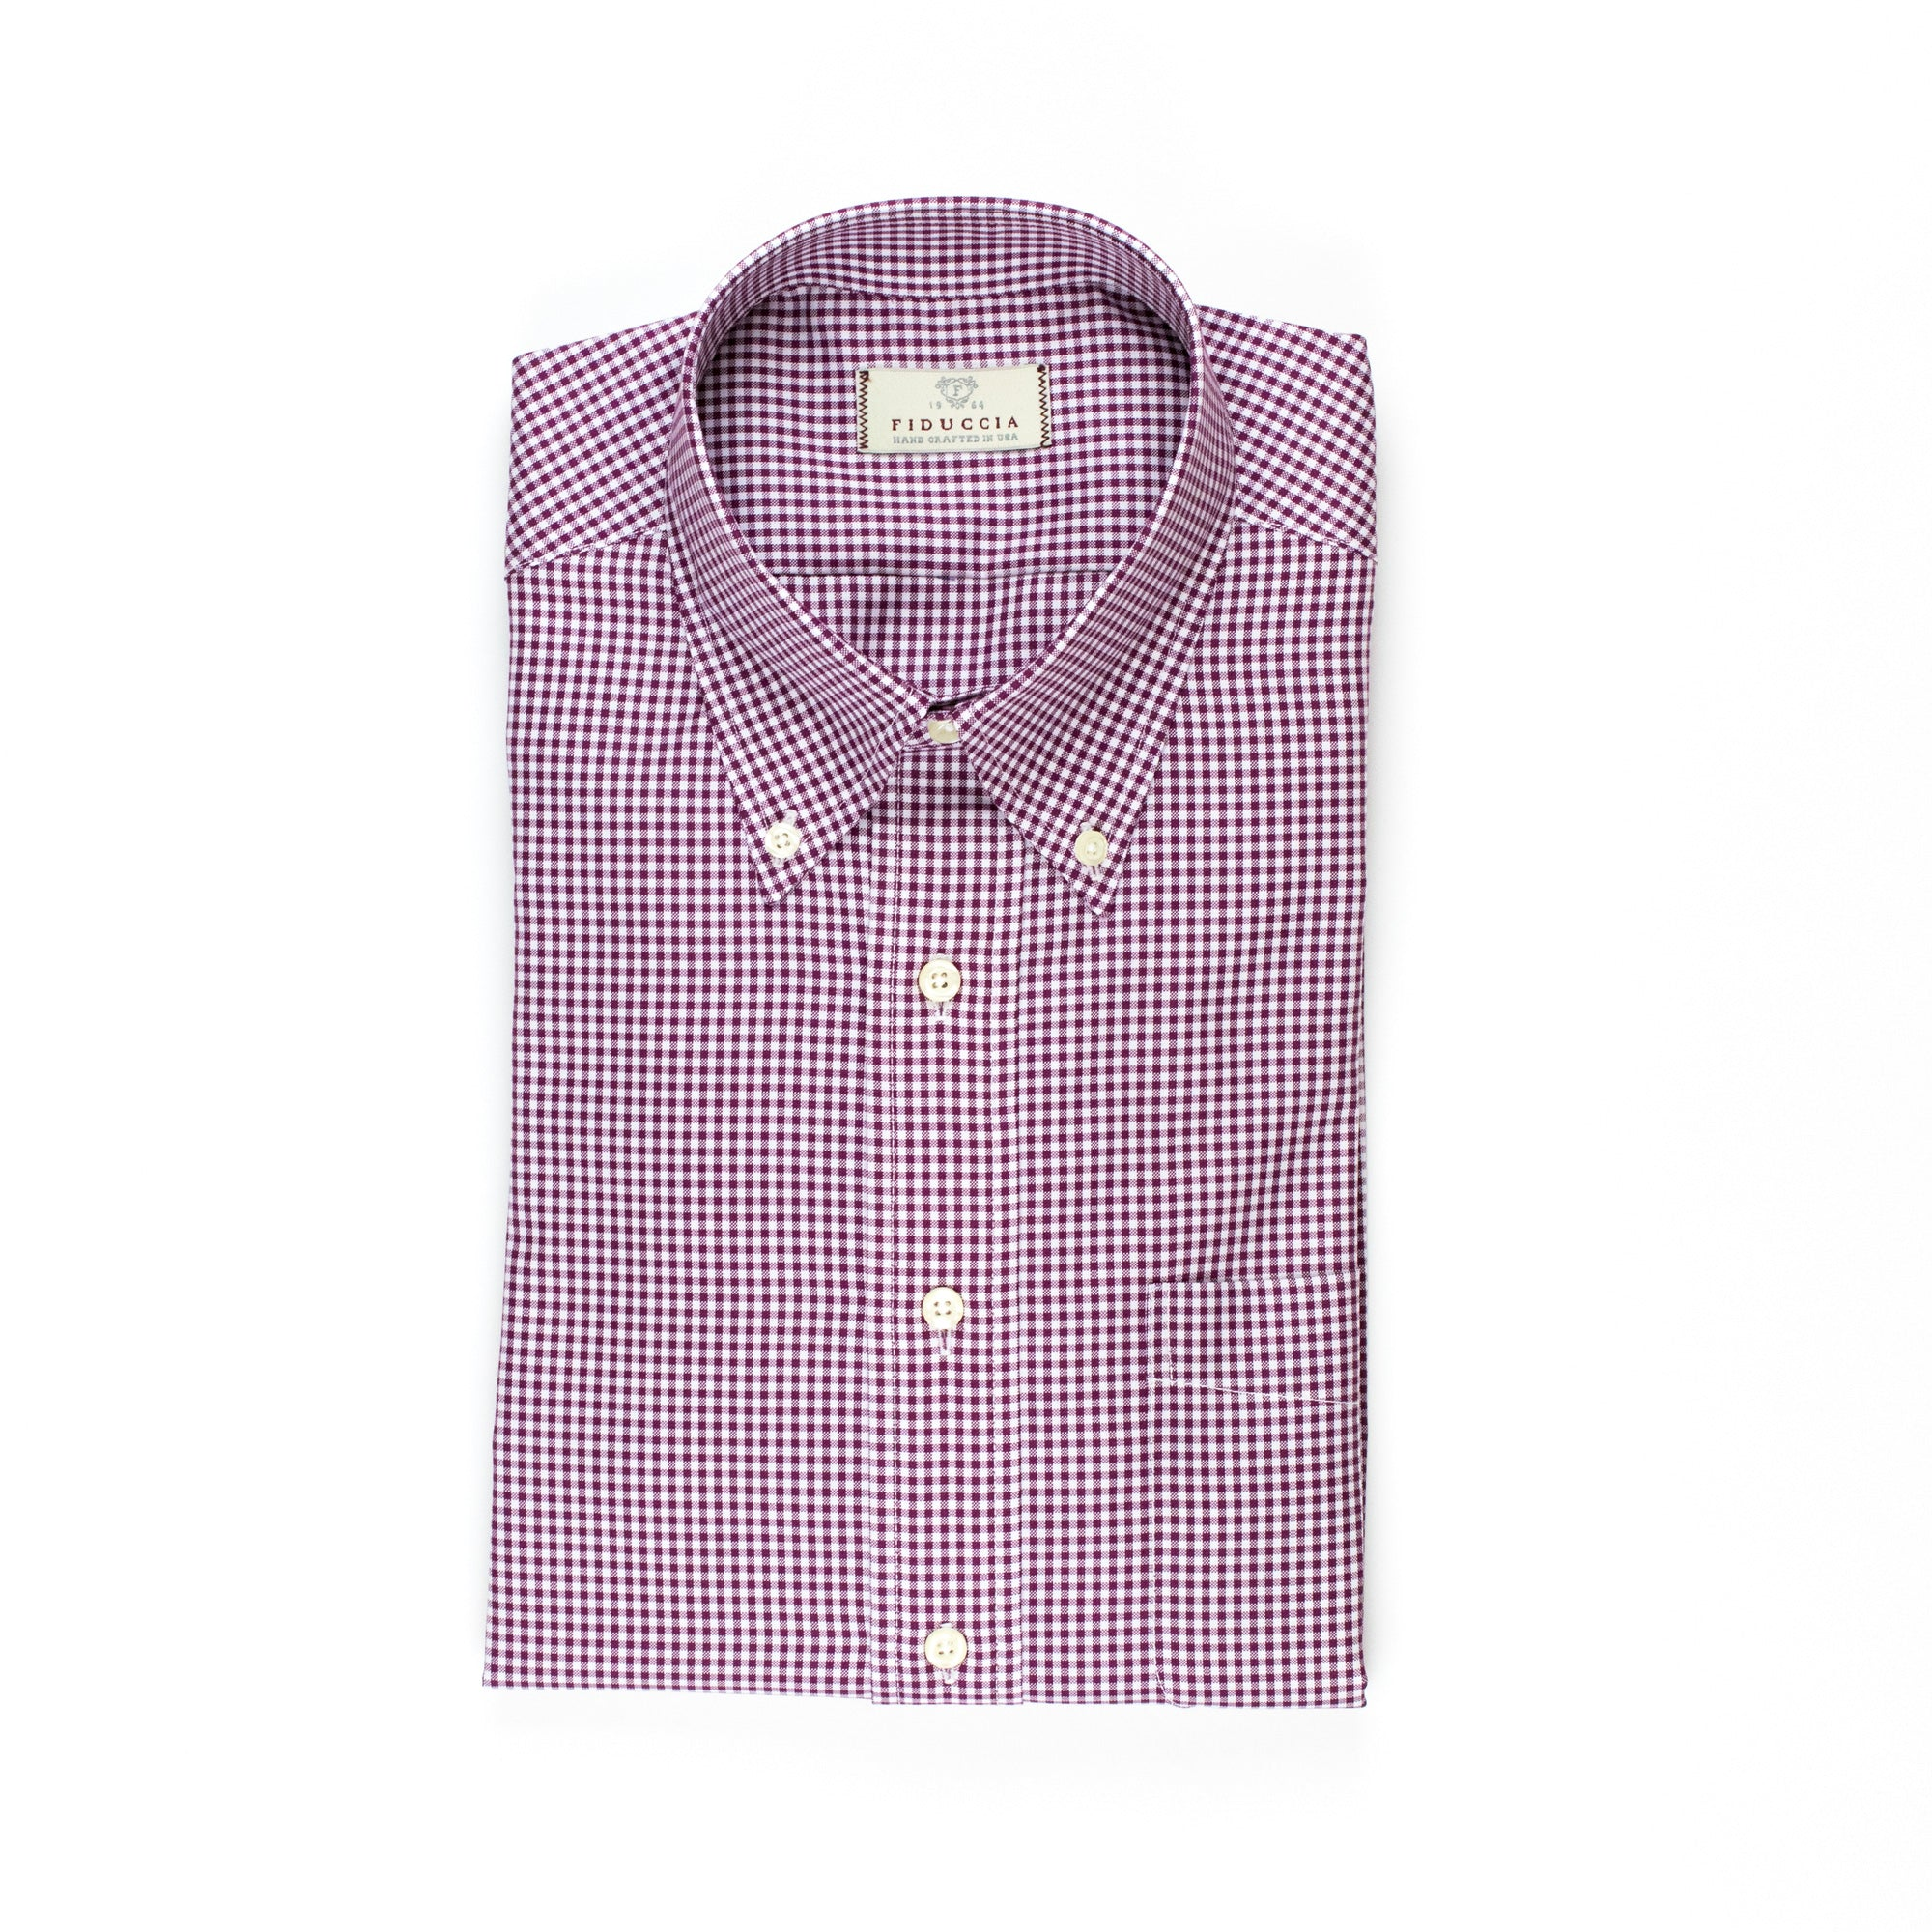 THE CHATHAM Dress Shirt - BD Collar